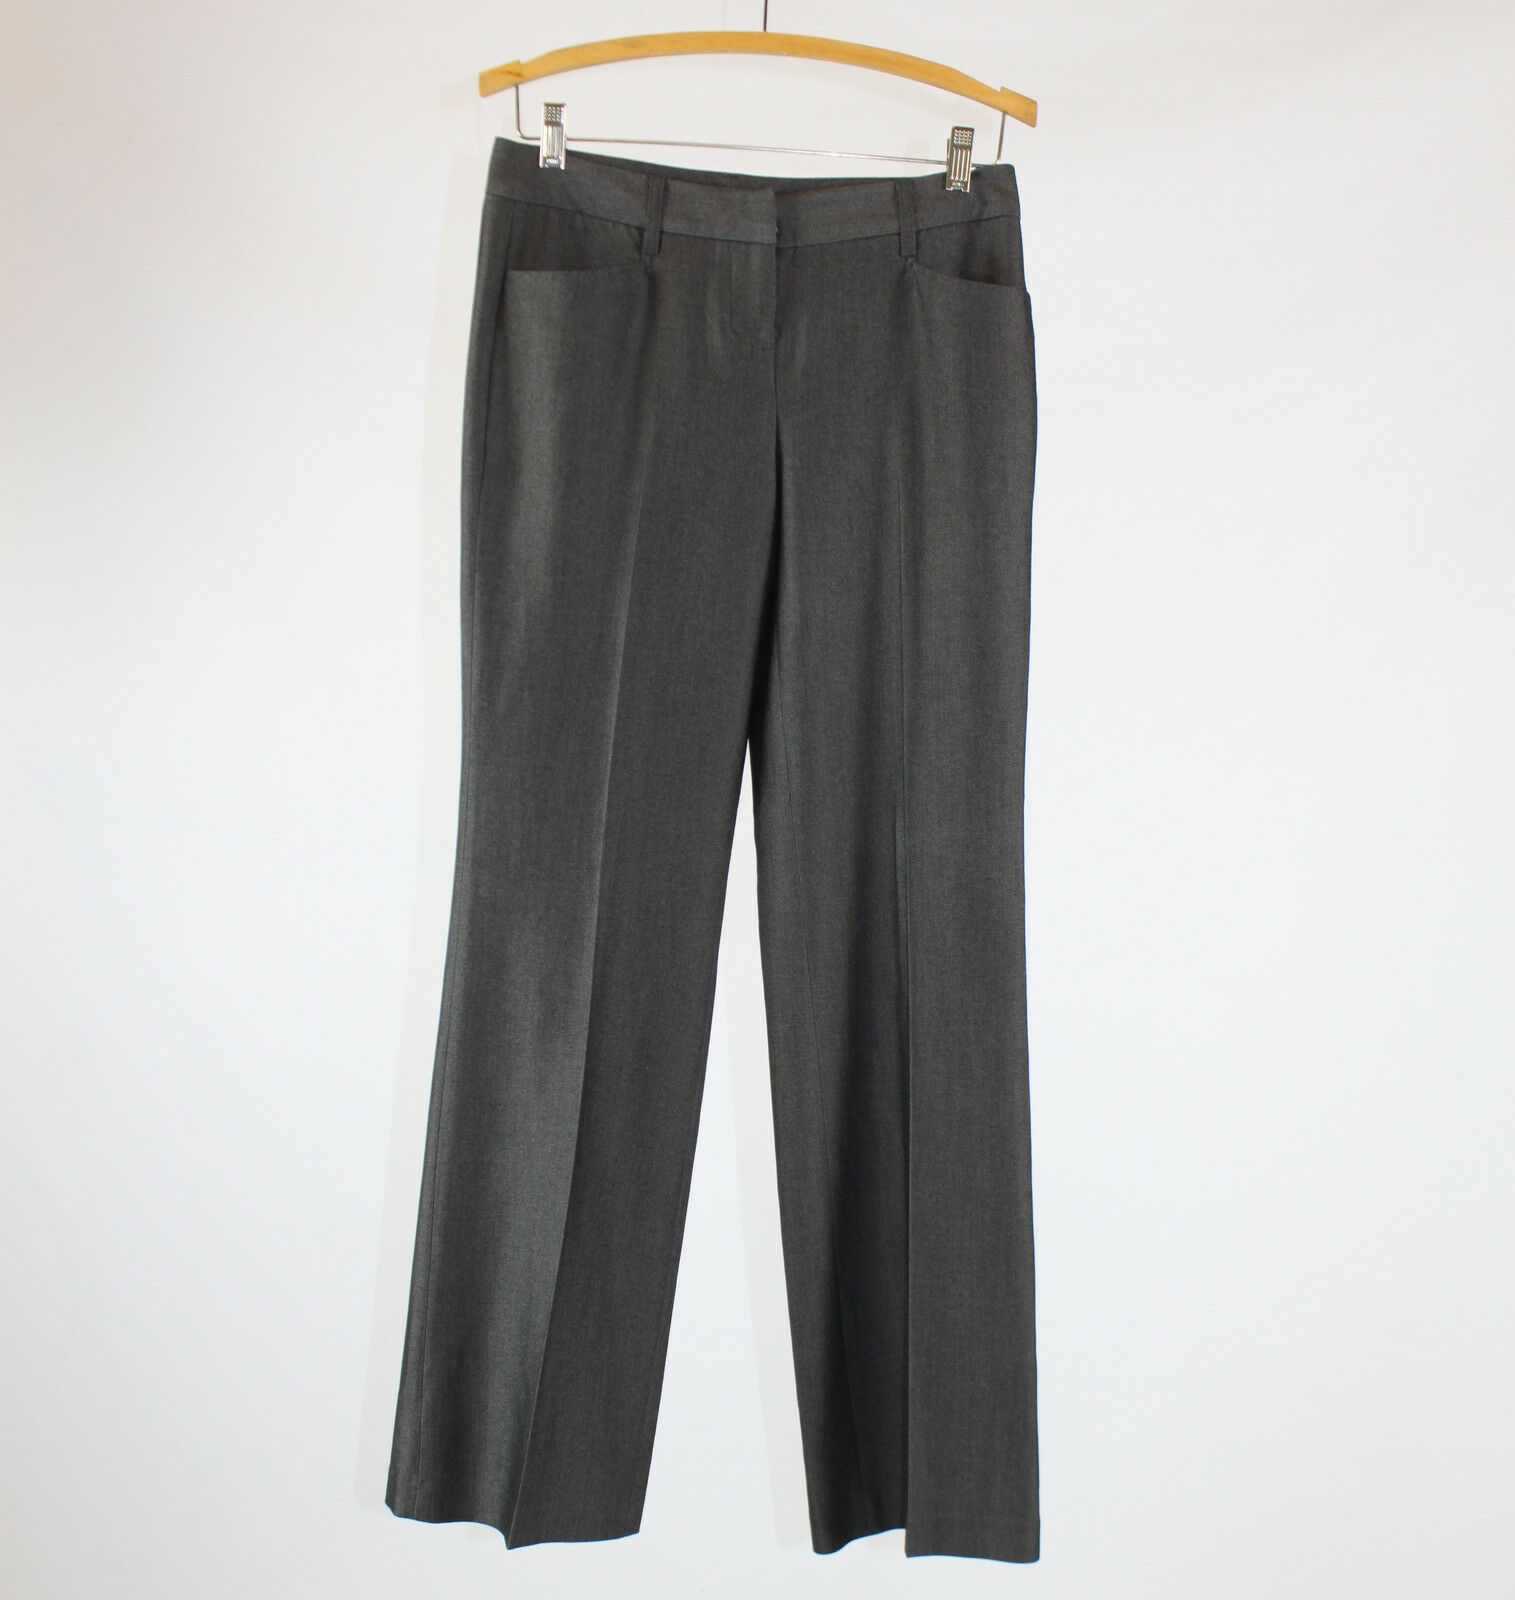 Gray stretch EXPRESS mid-rise dress pants 2